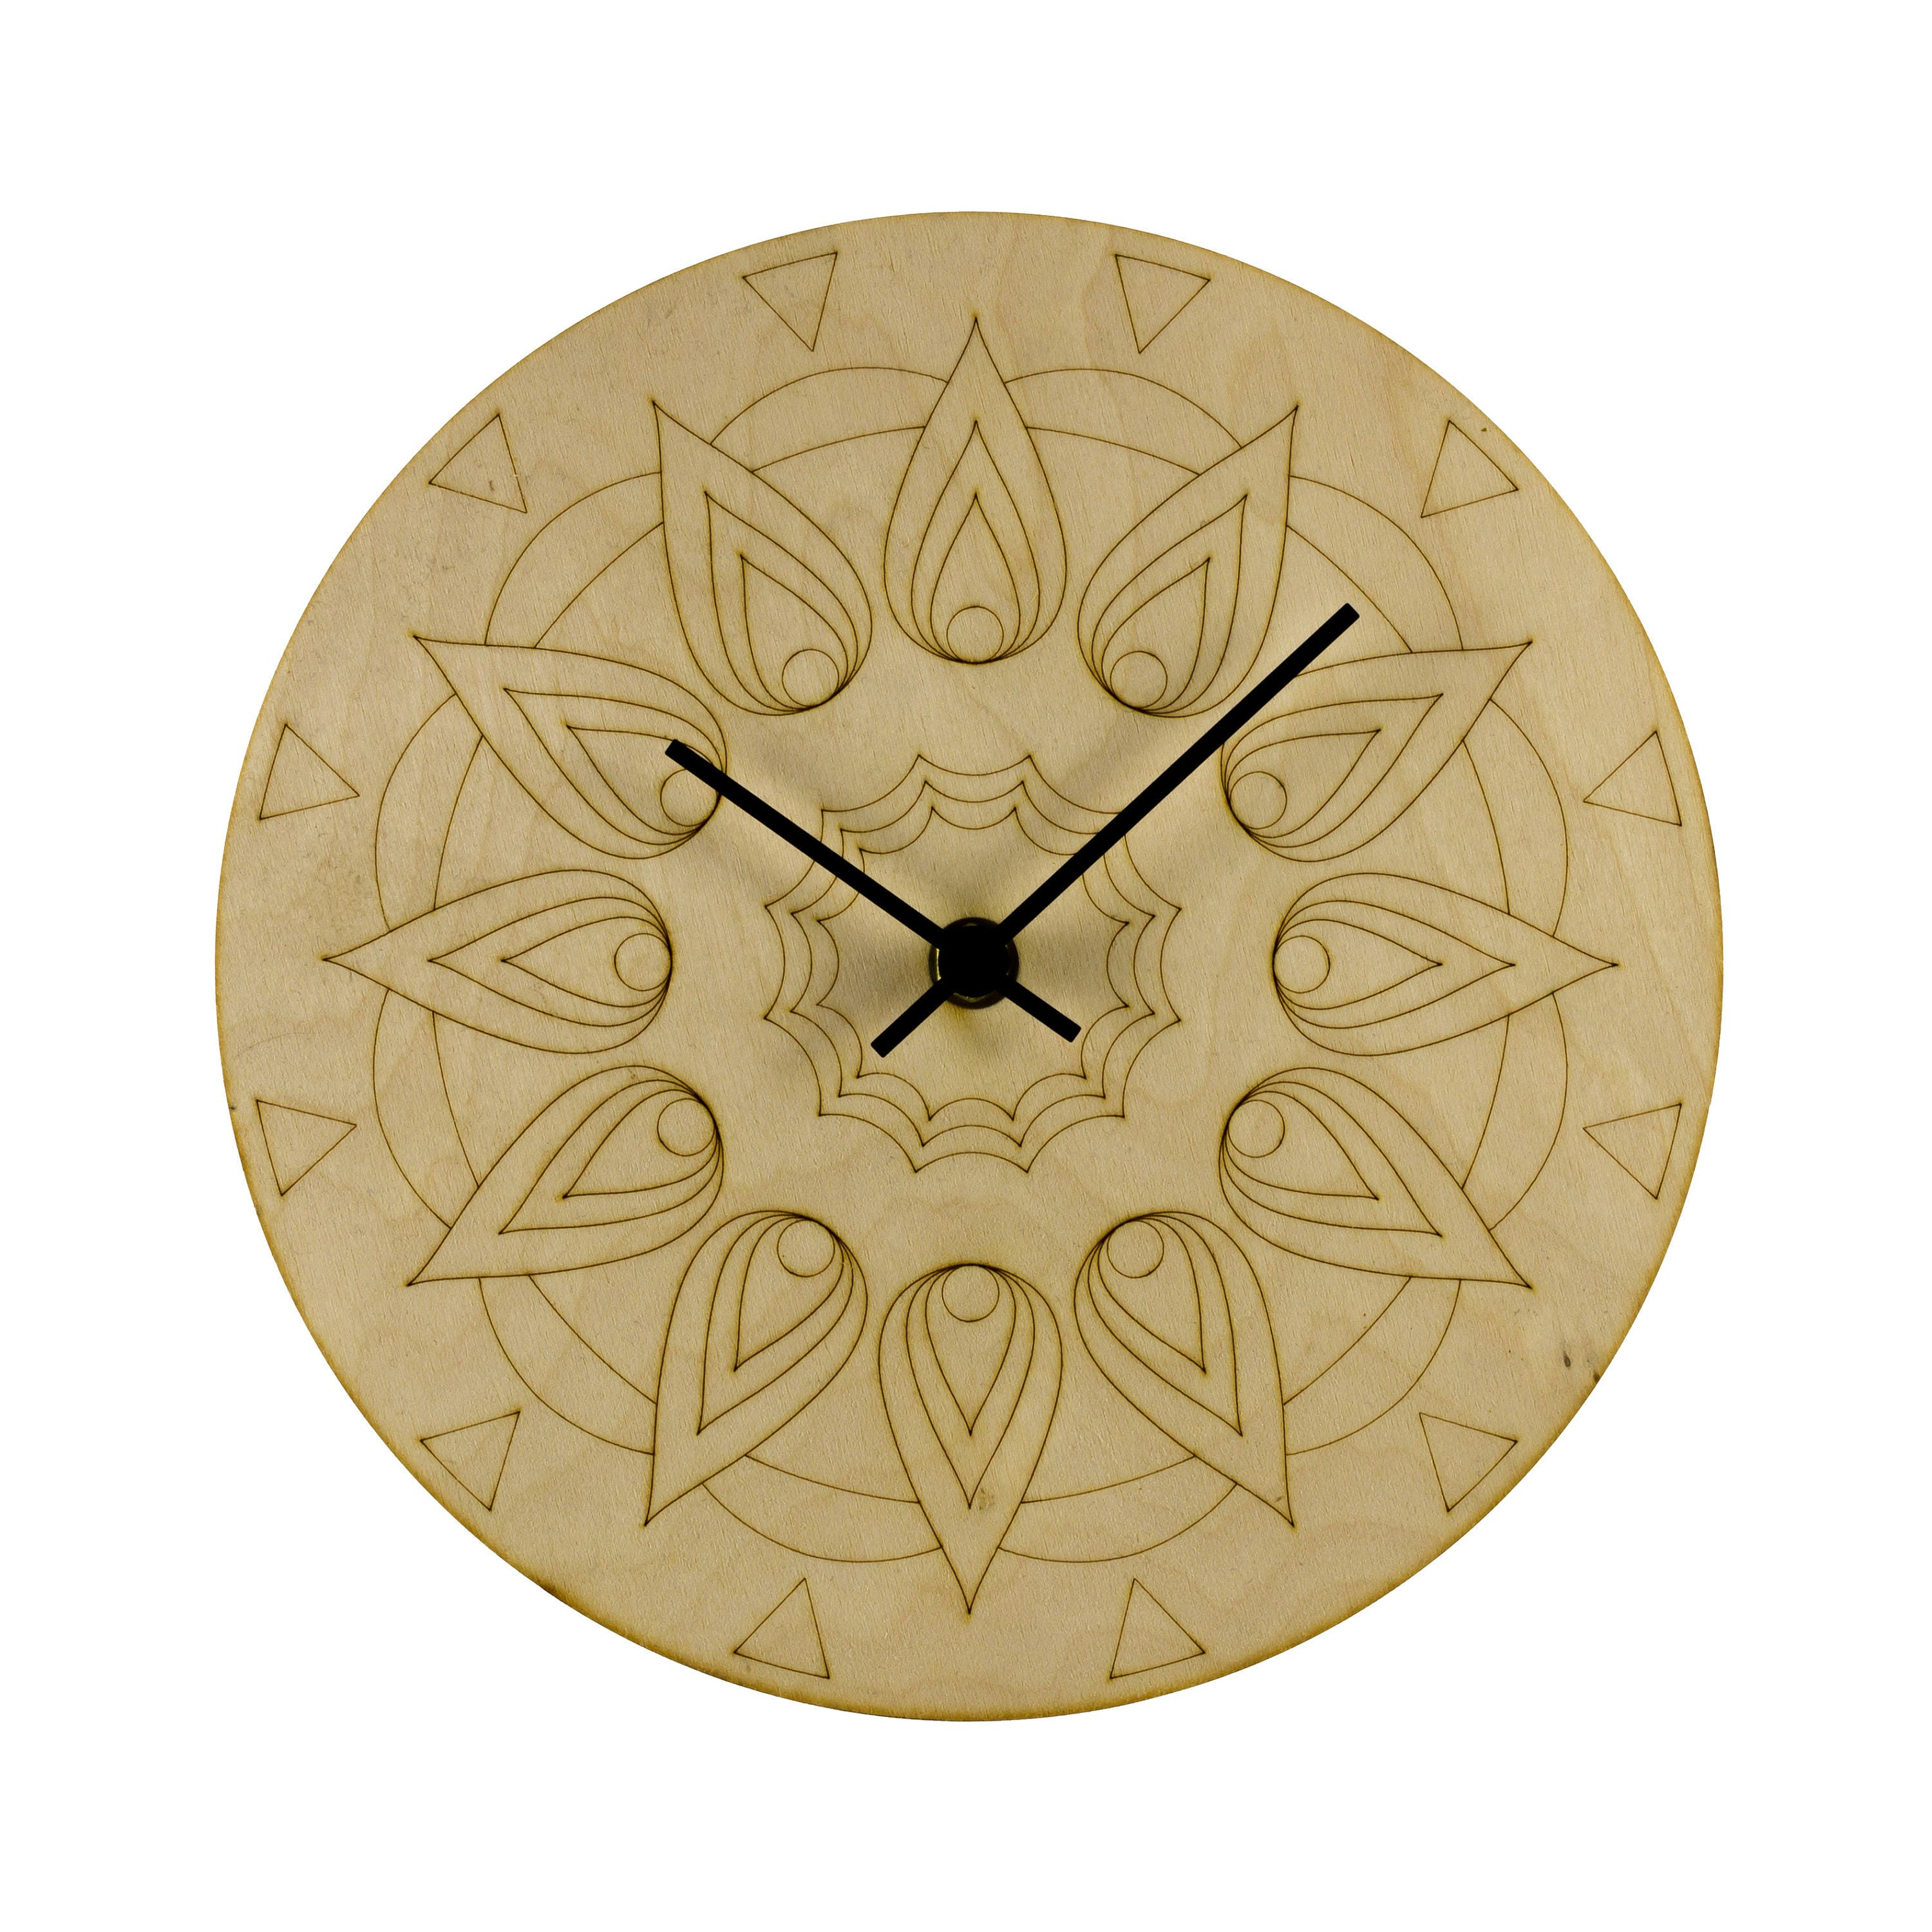 Mandala wooden wall clock Wall Art Home decor Unique